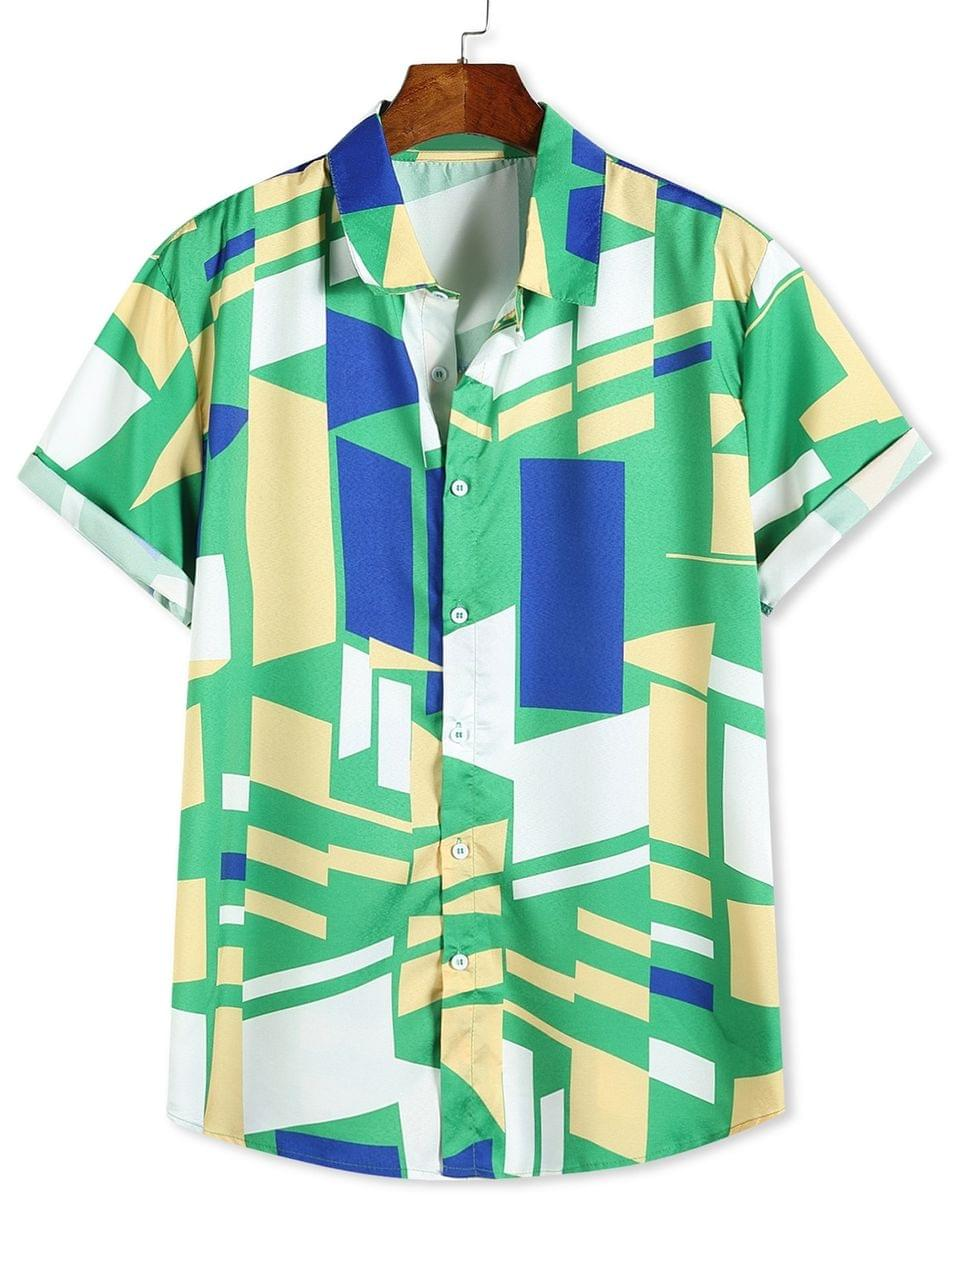 Men's Color Blocking Geometric Print Button Up Vacation Shirt - Multi-b M